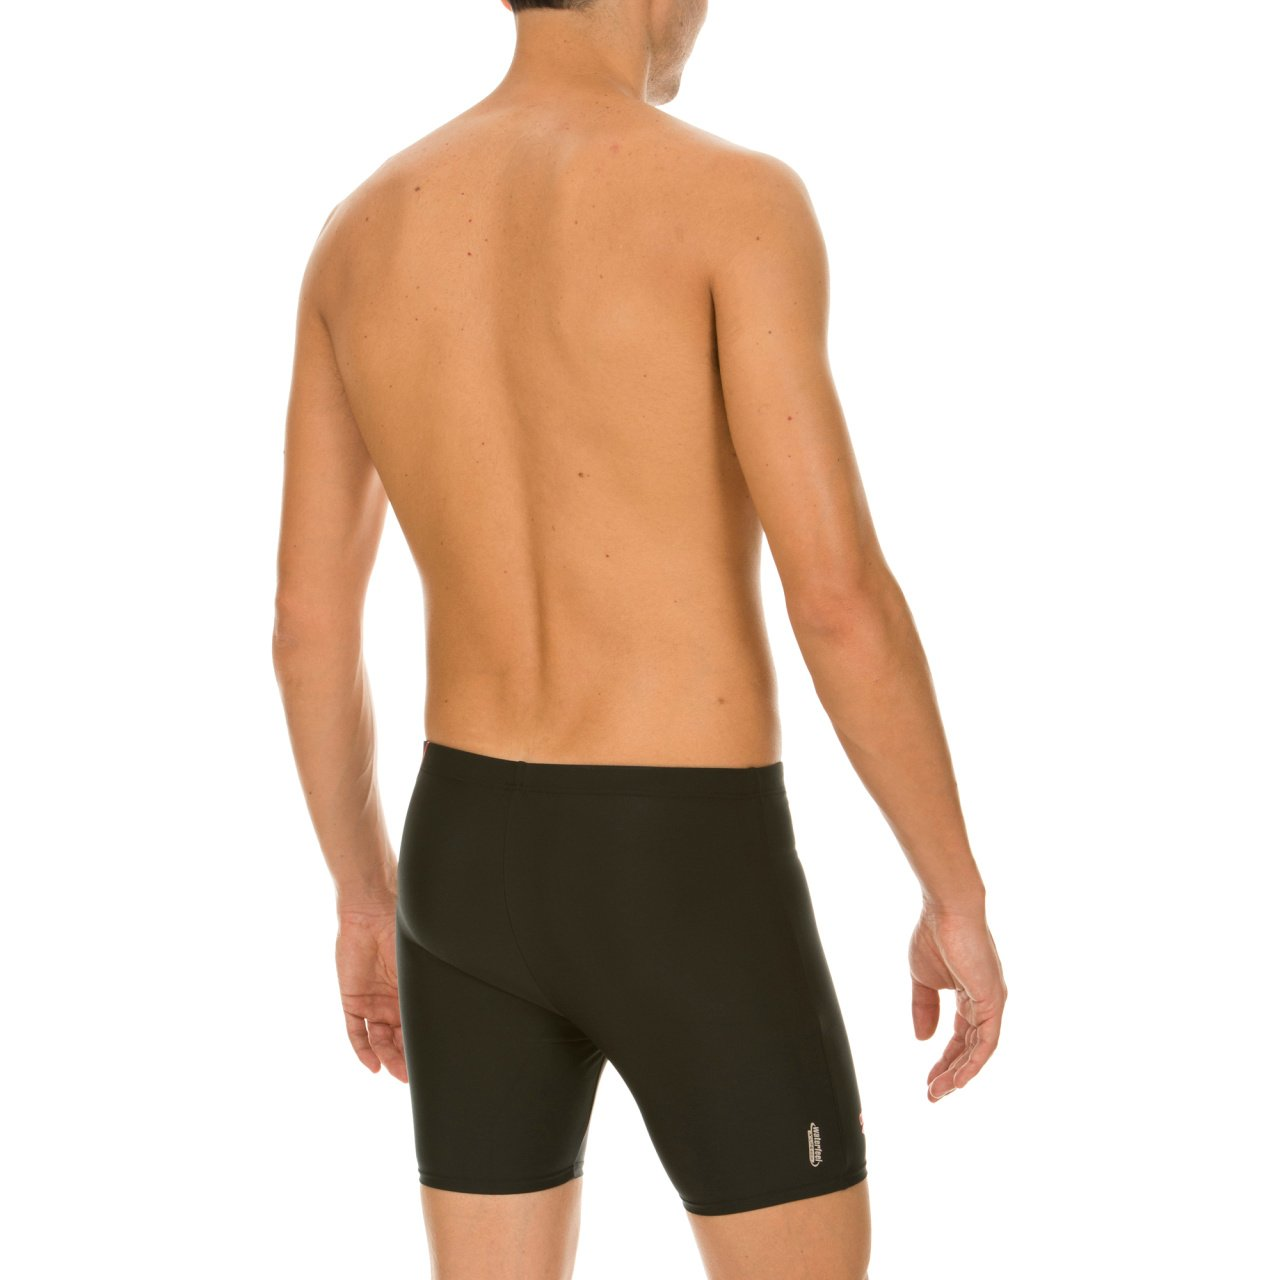 Arena Men's Swimming Trunks with Spring